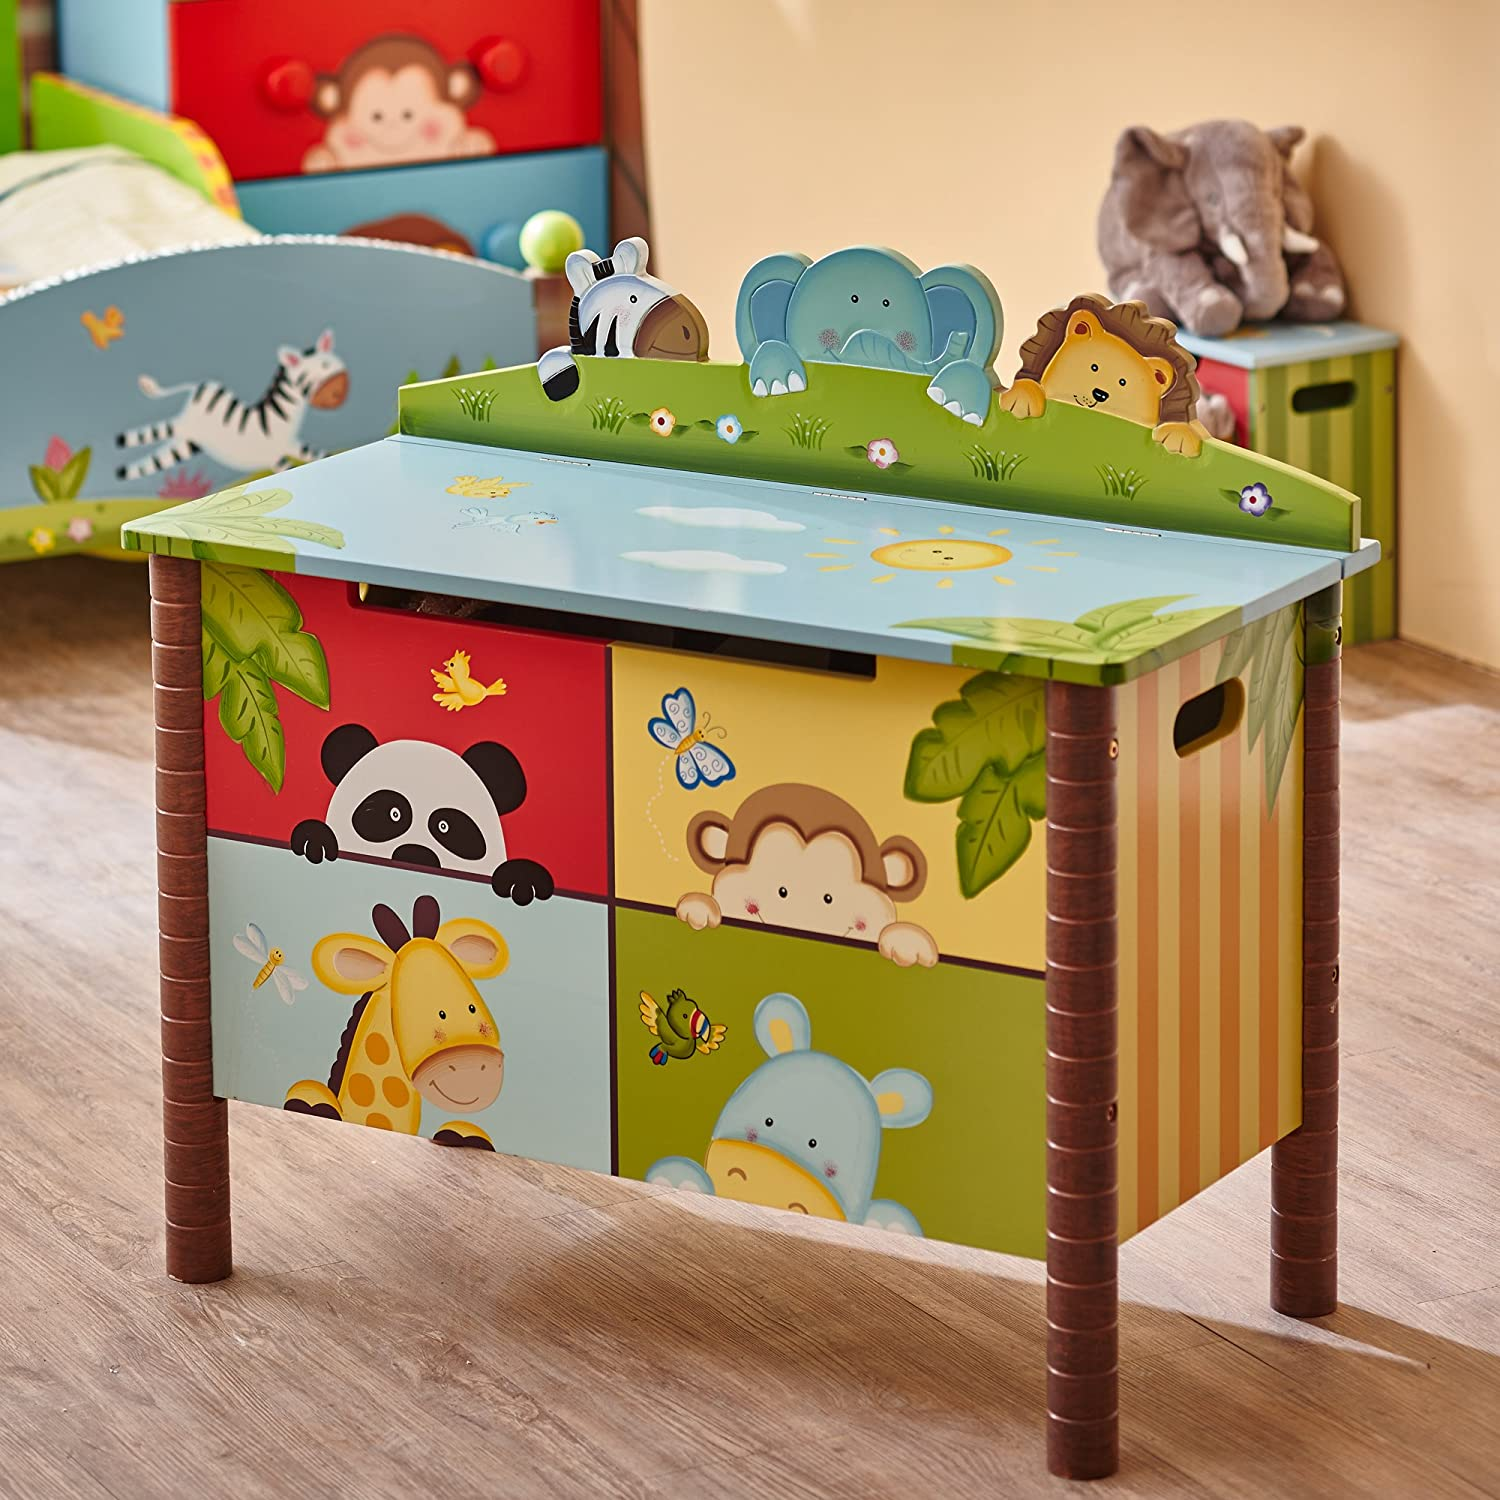 Kids wooden toy chest sunny safari - Amazon Com Fantasy Fields Sunny Safari Animals Thematic Kids Wooden Toy Chest With Safety Hinges Imagination Inspiring Hand Crafted Hand Painted